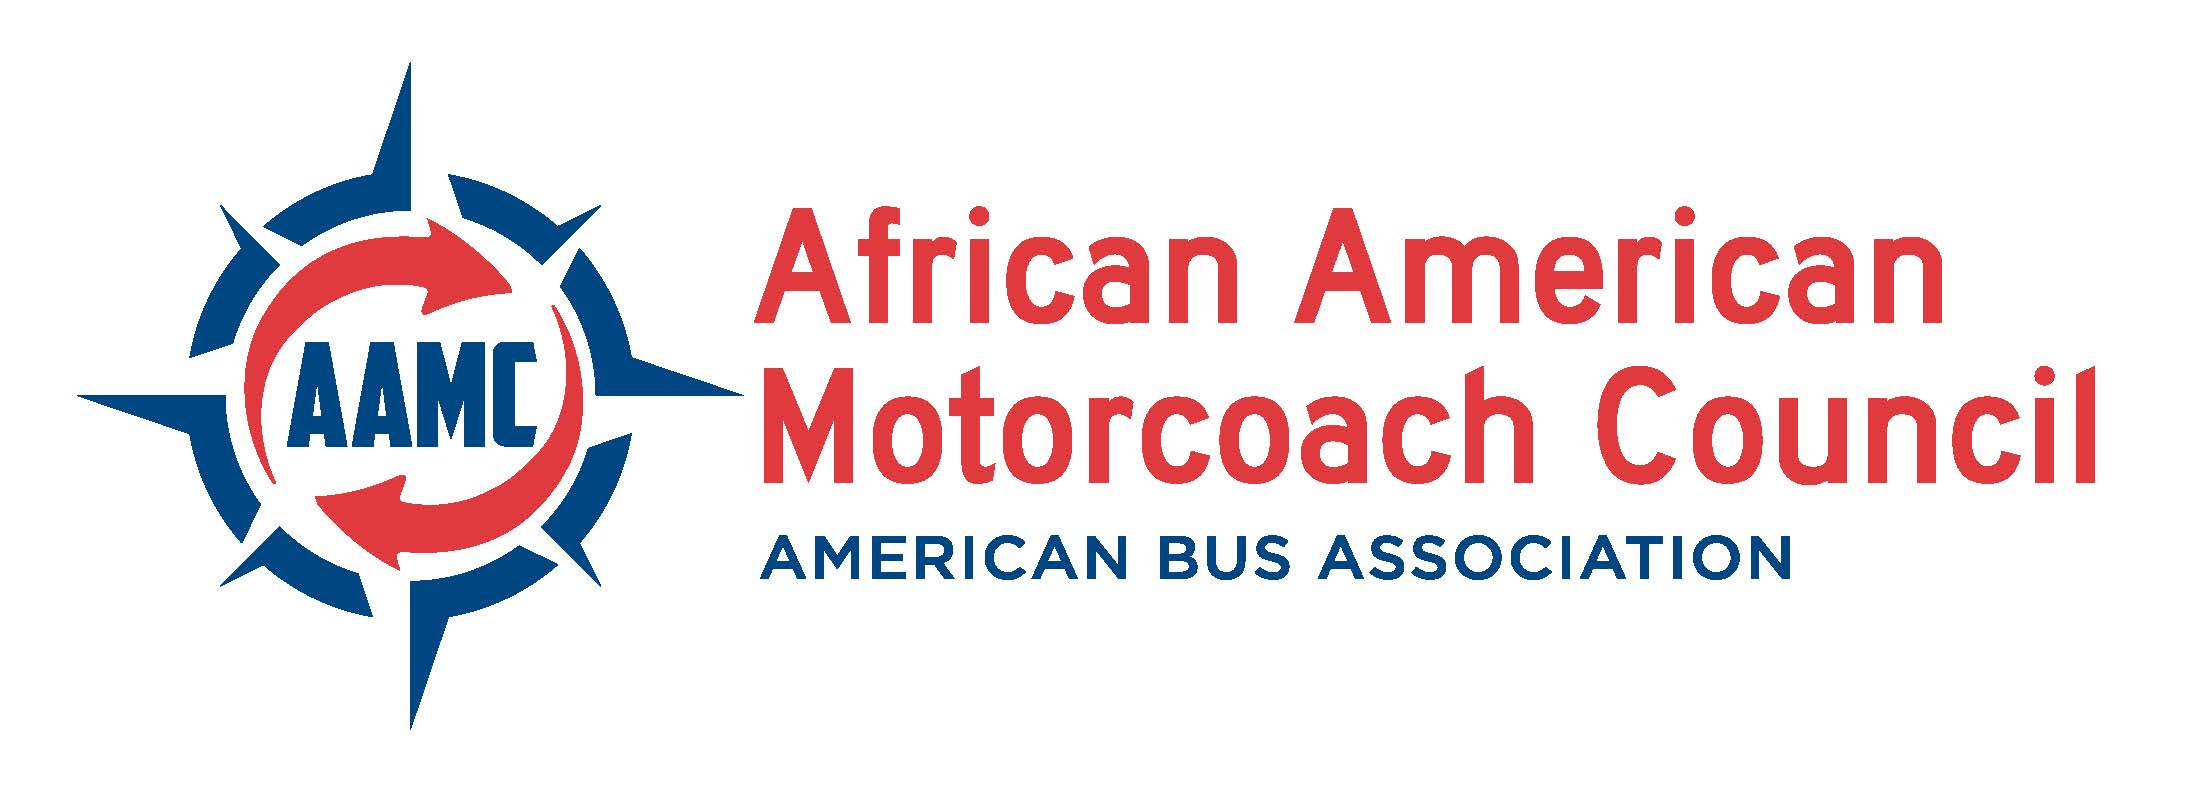 African American Motorcoach Council